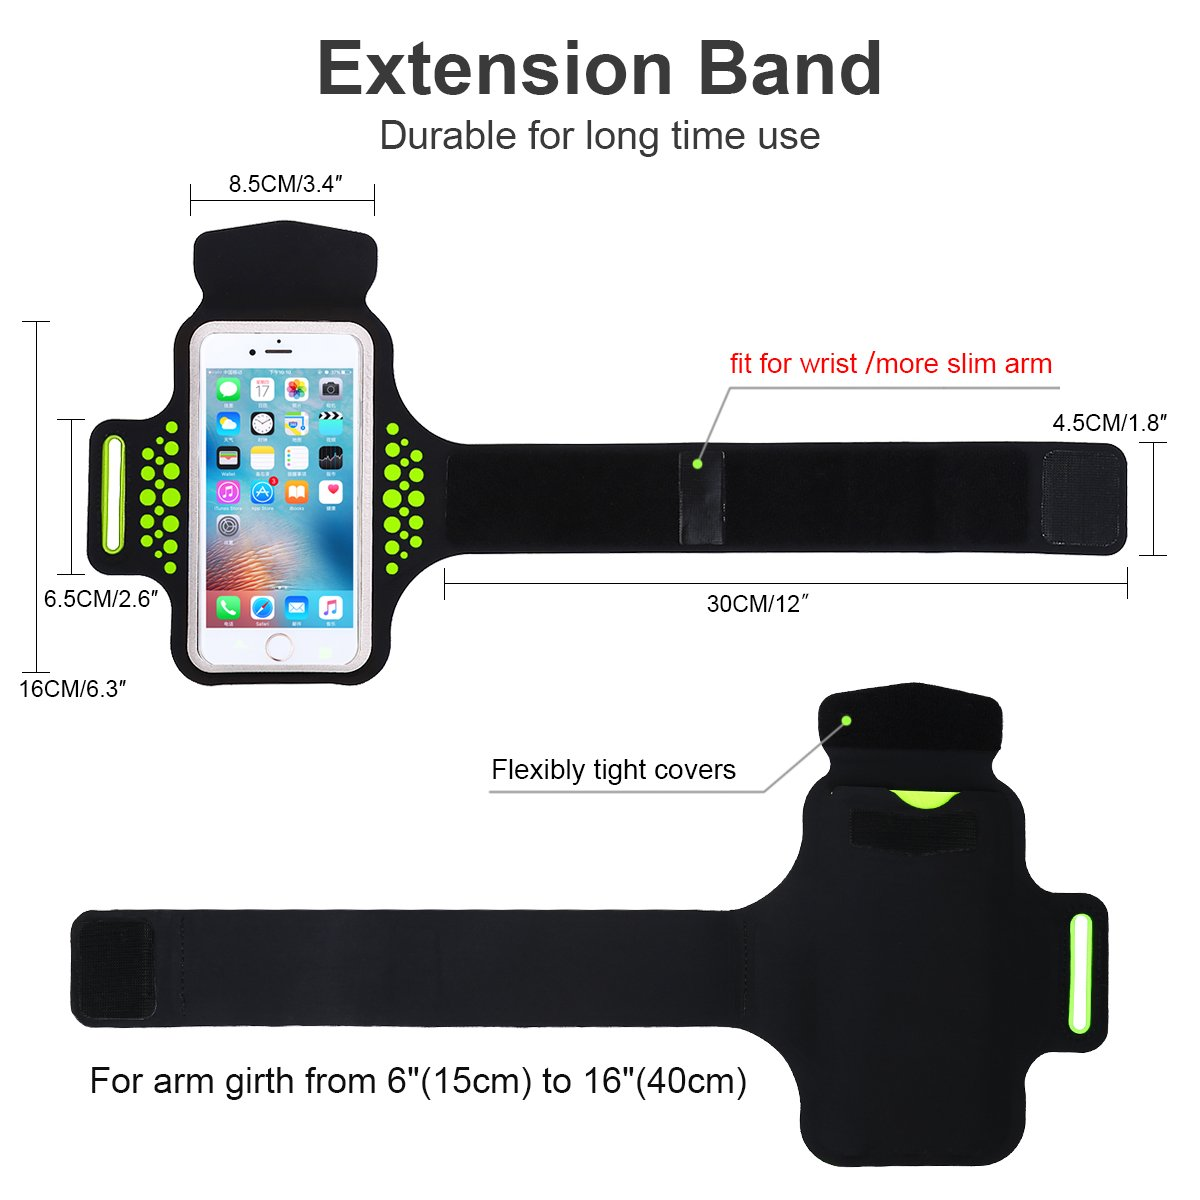 Amazon.com: Armband for iPhone 8 Plus iPhone 7 Plus 6 Plus 6s Plus,Workout Arm Band for Samsung Galaxy S5/S6/S7 Edge s8, LG G5, Note 2/3/4/5, ...